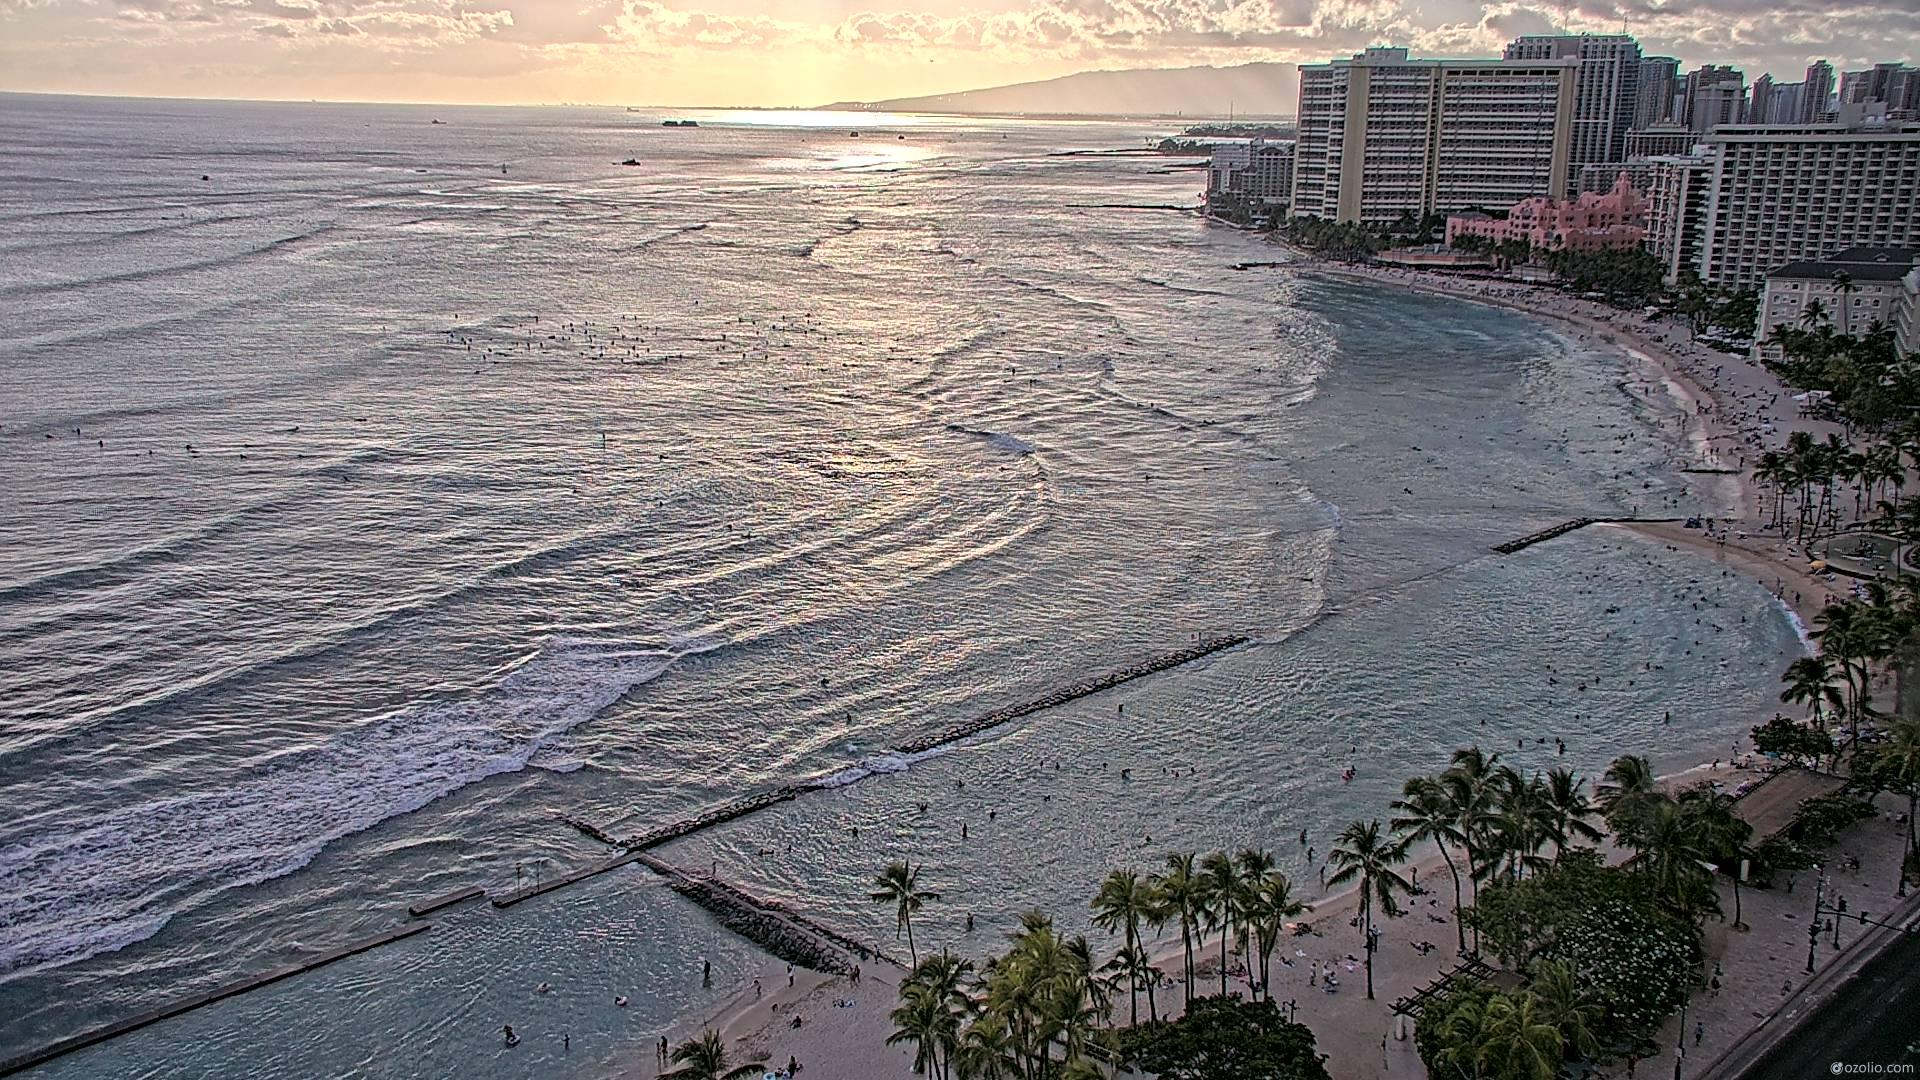 Waikiki Beach, Hawaii Fri. 18:16